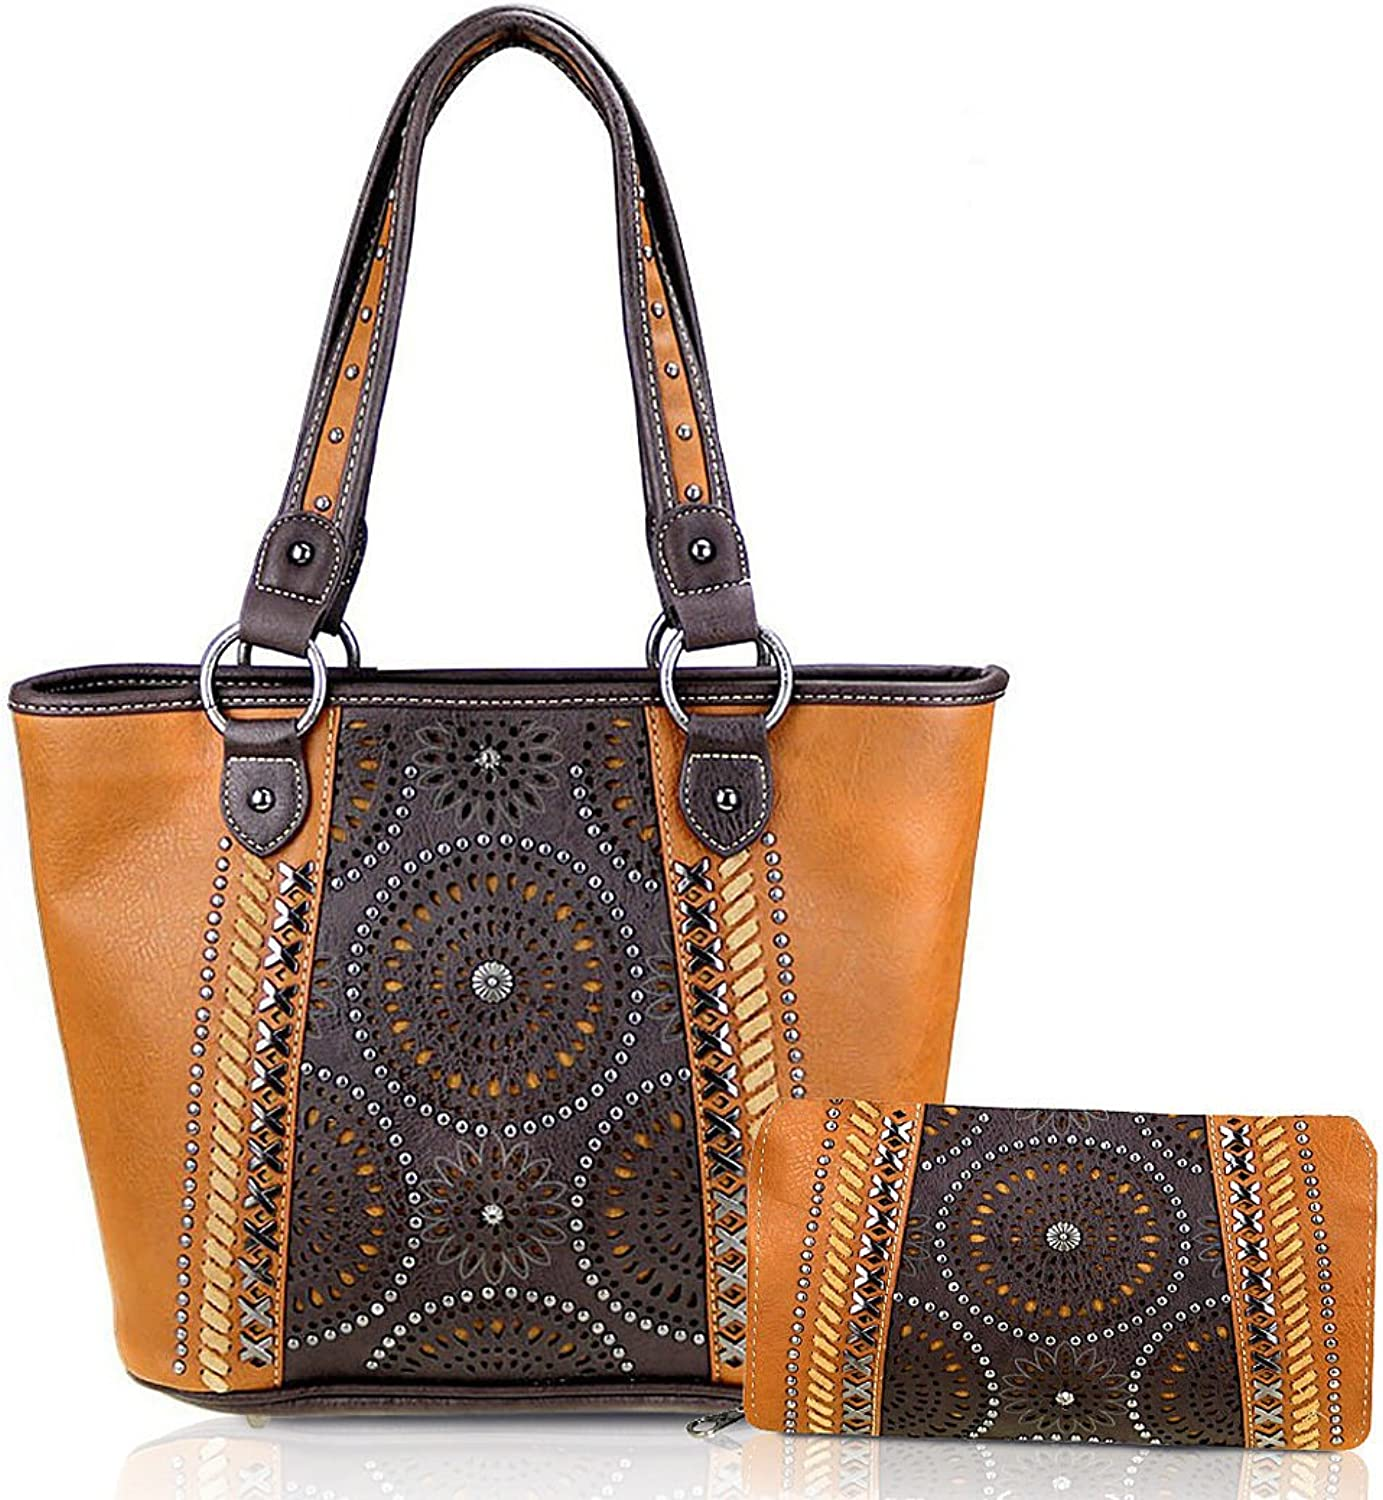 Montana West Concealed Carry, Perforated Layered Floral Tote + Wallet Brown